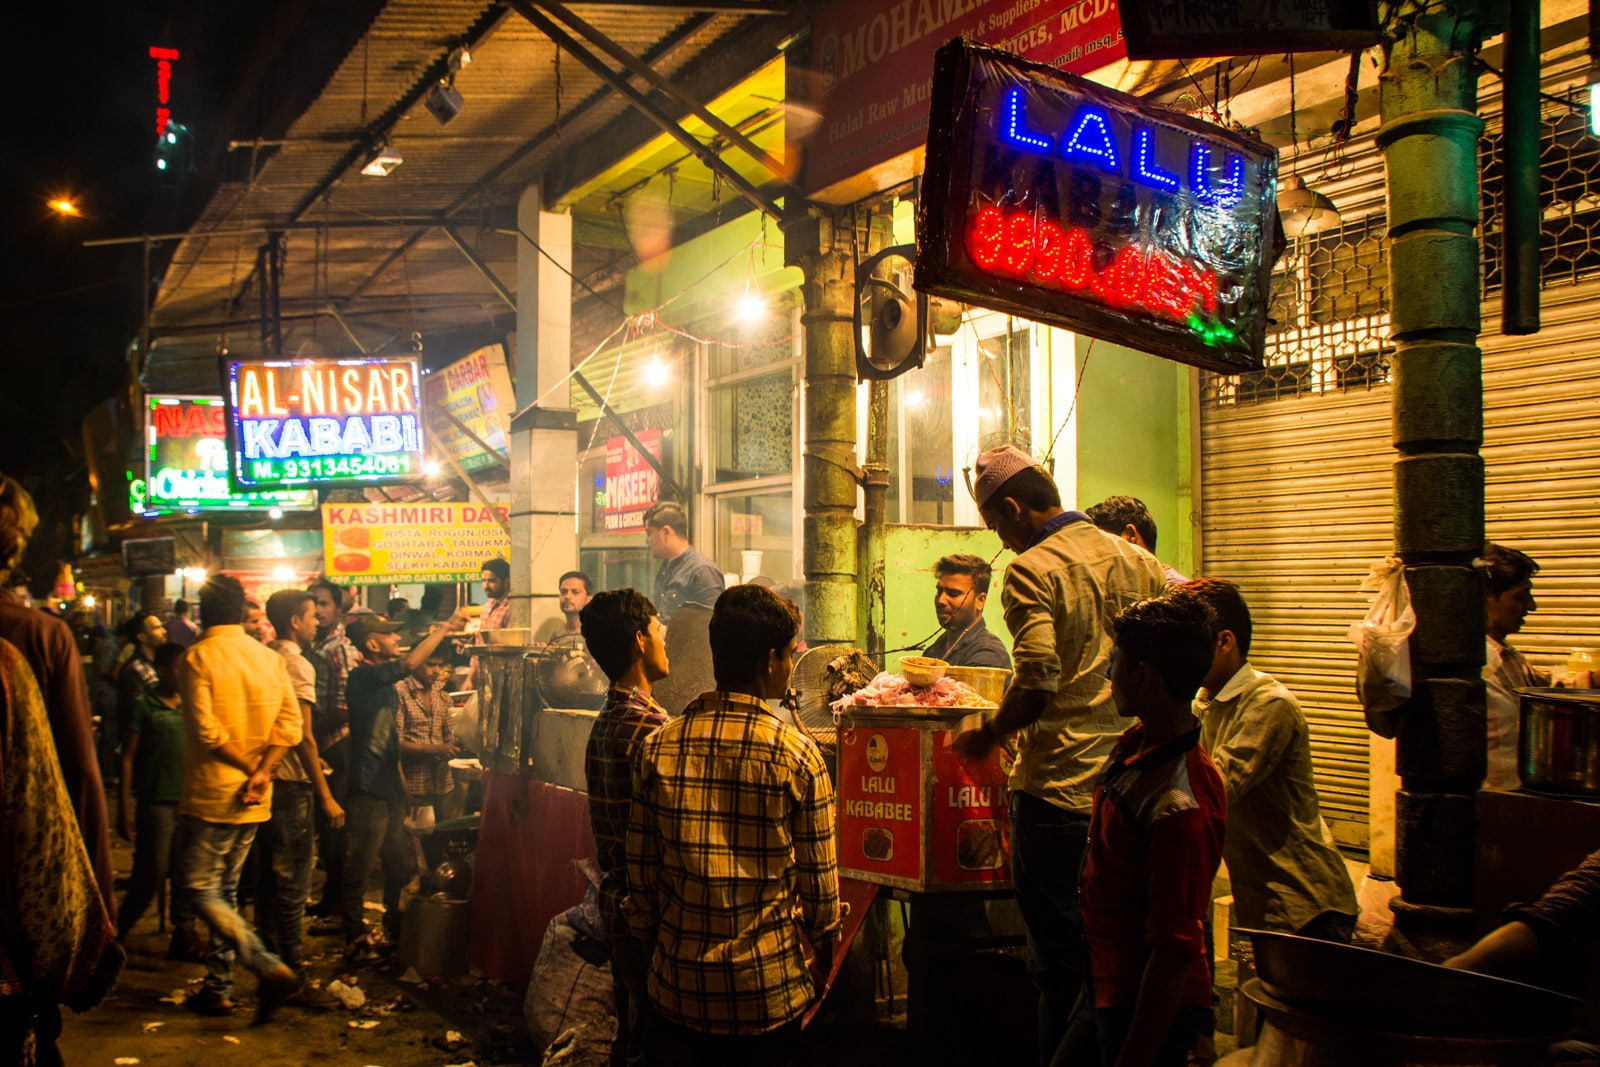 Why we fell in love with India - Street food at night in Old Delhi, India - Lost With Purpose travel blog